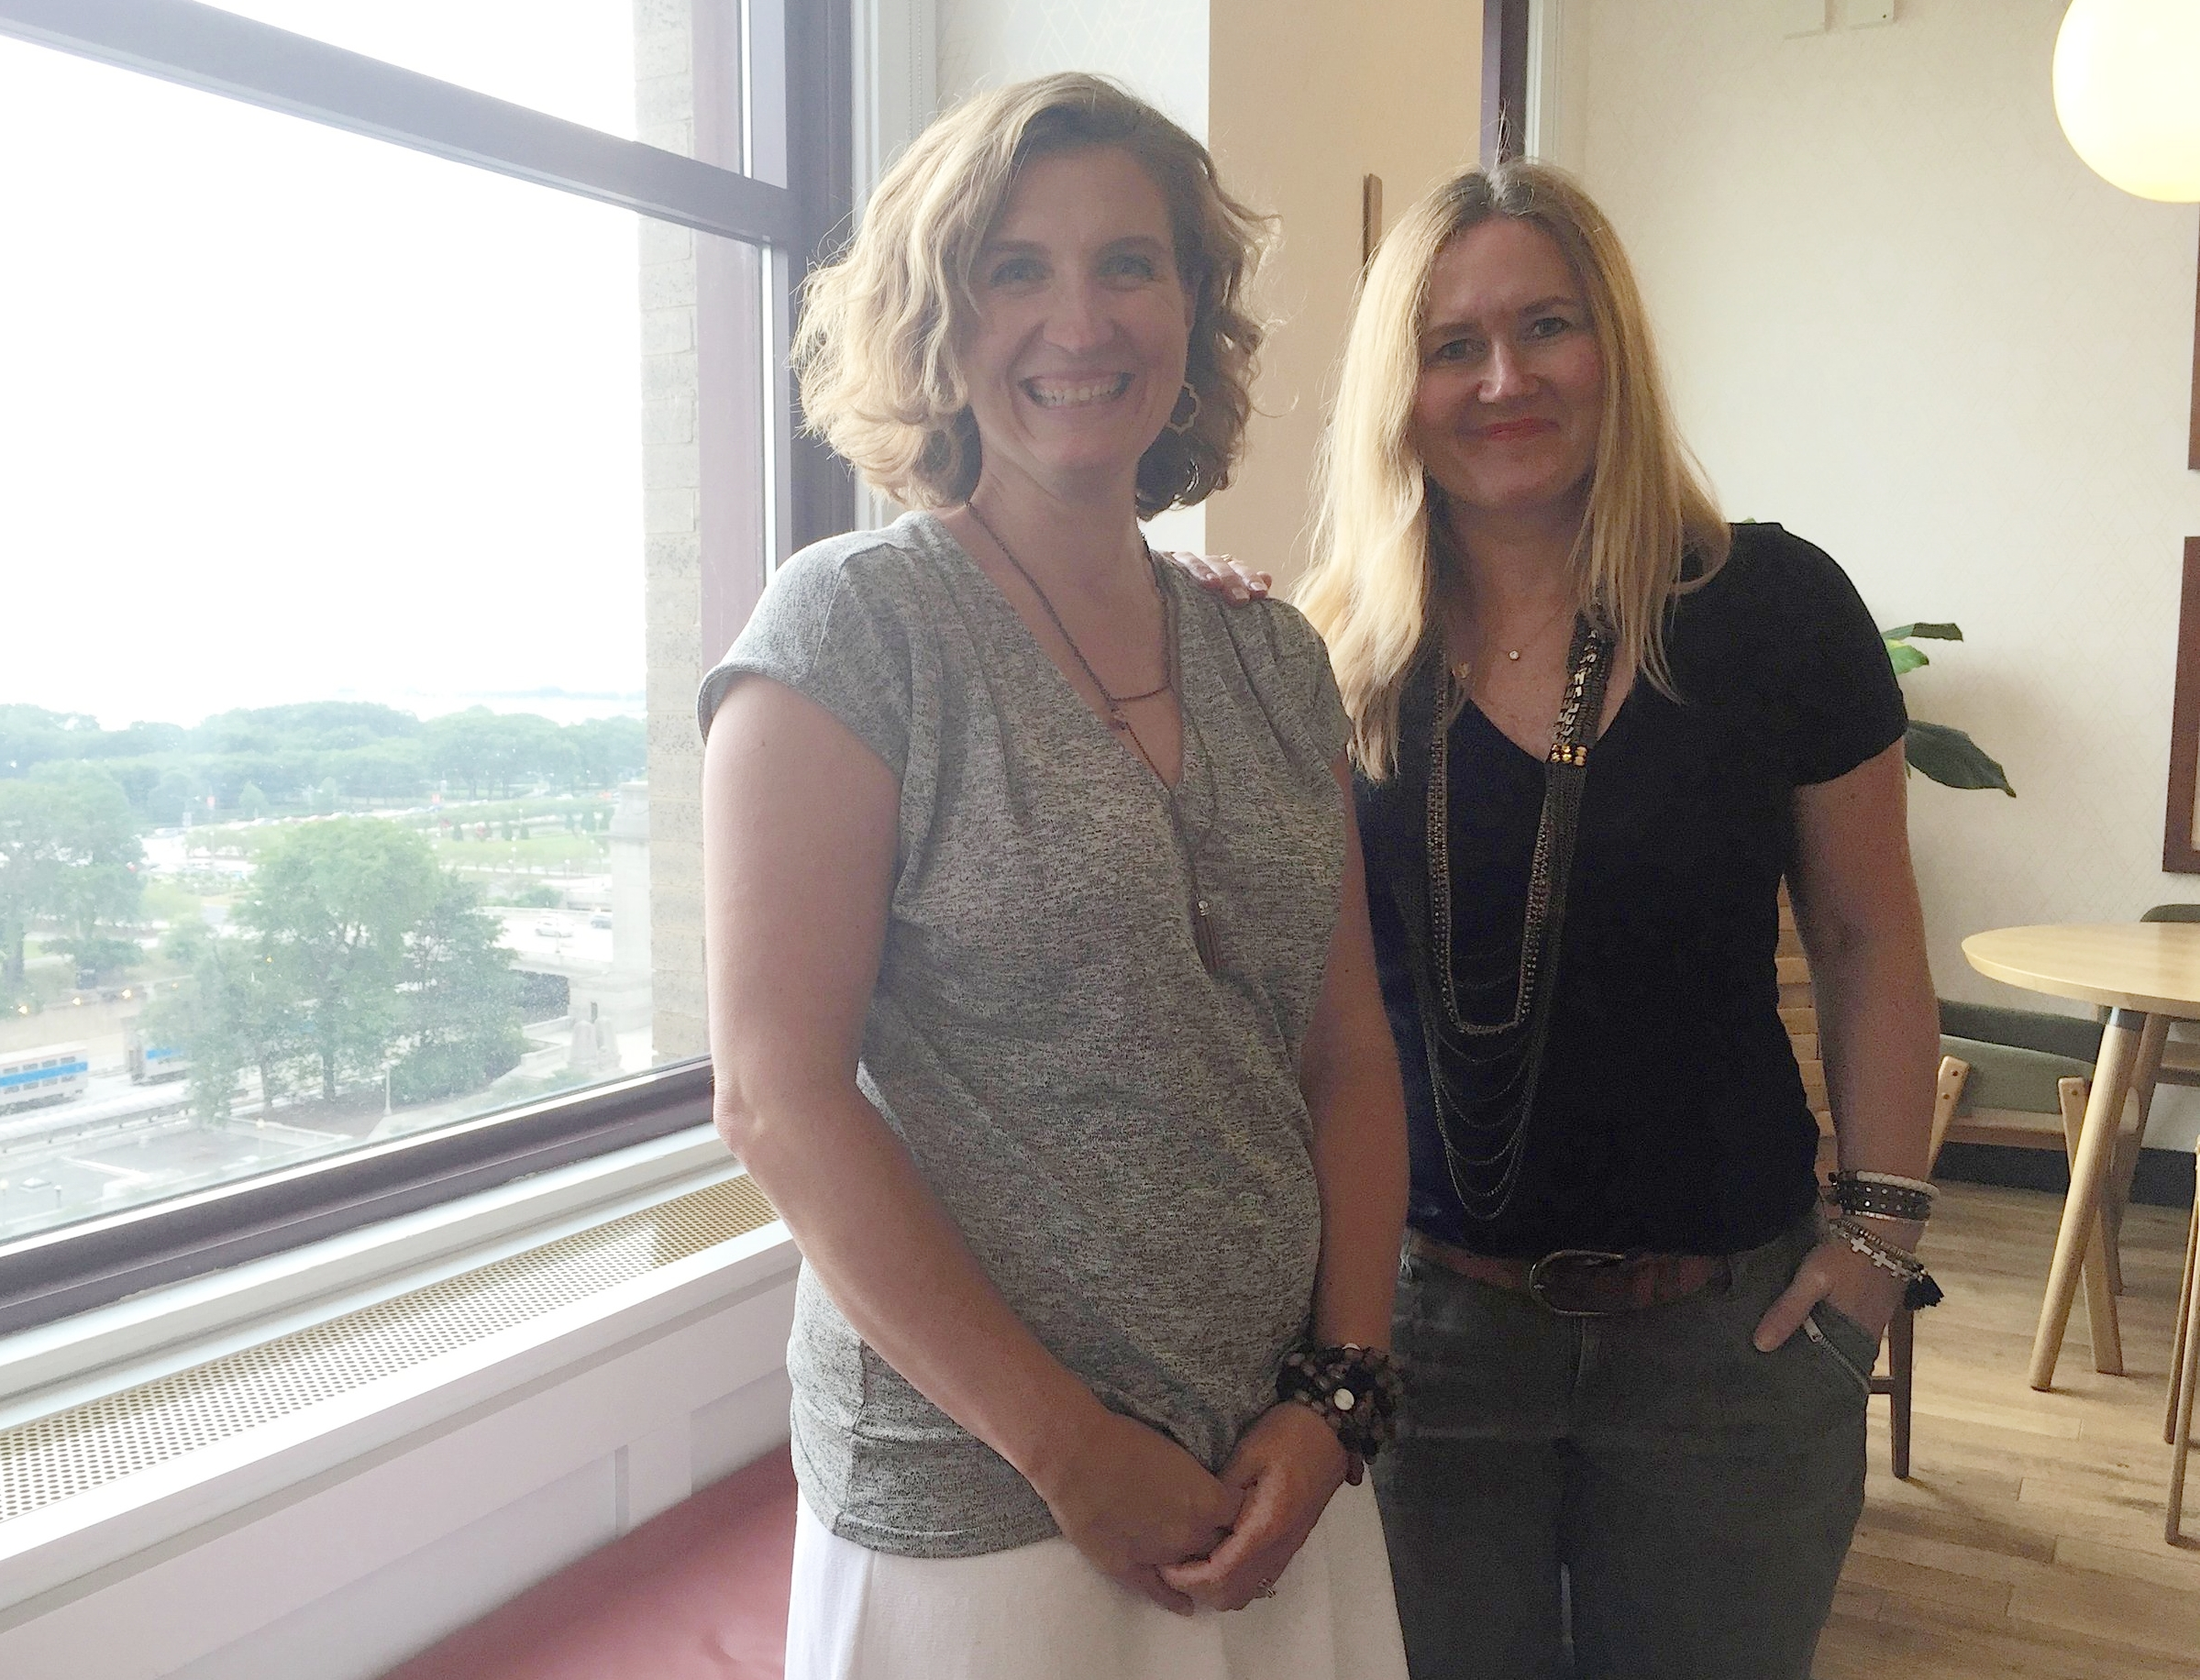 Cofounders Corinne Neil & Megan A.C. Boswell